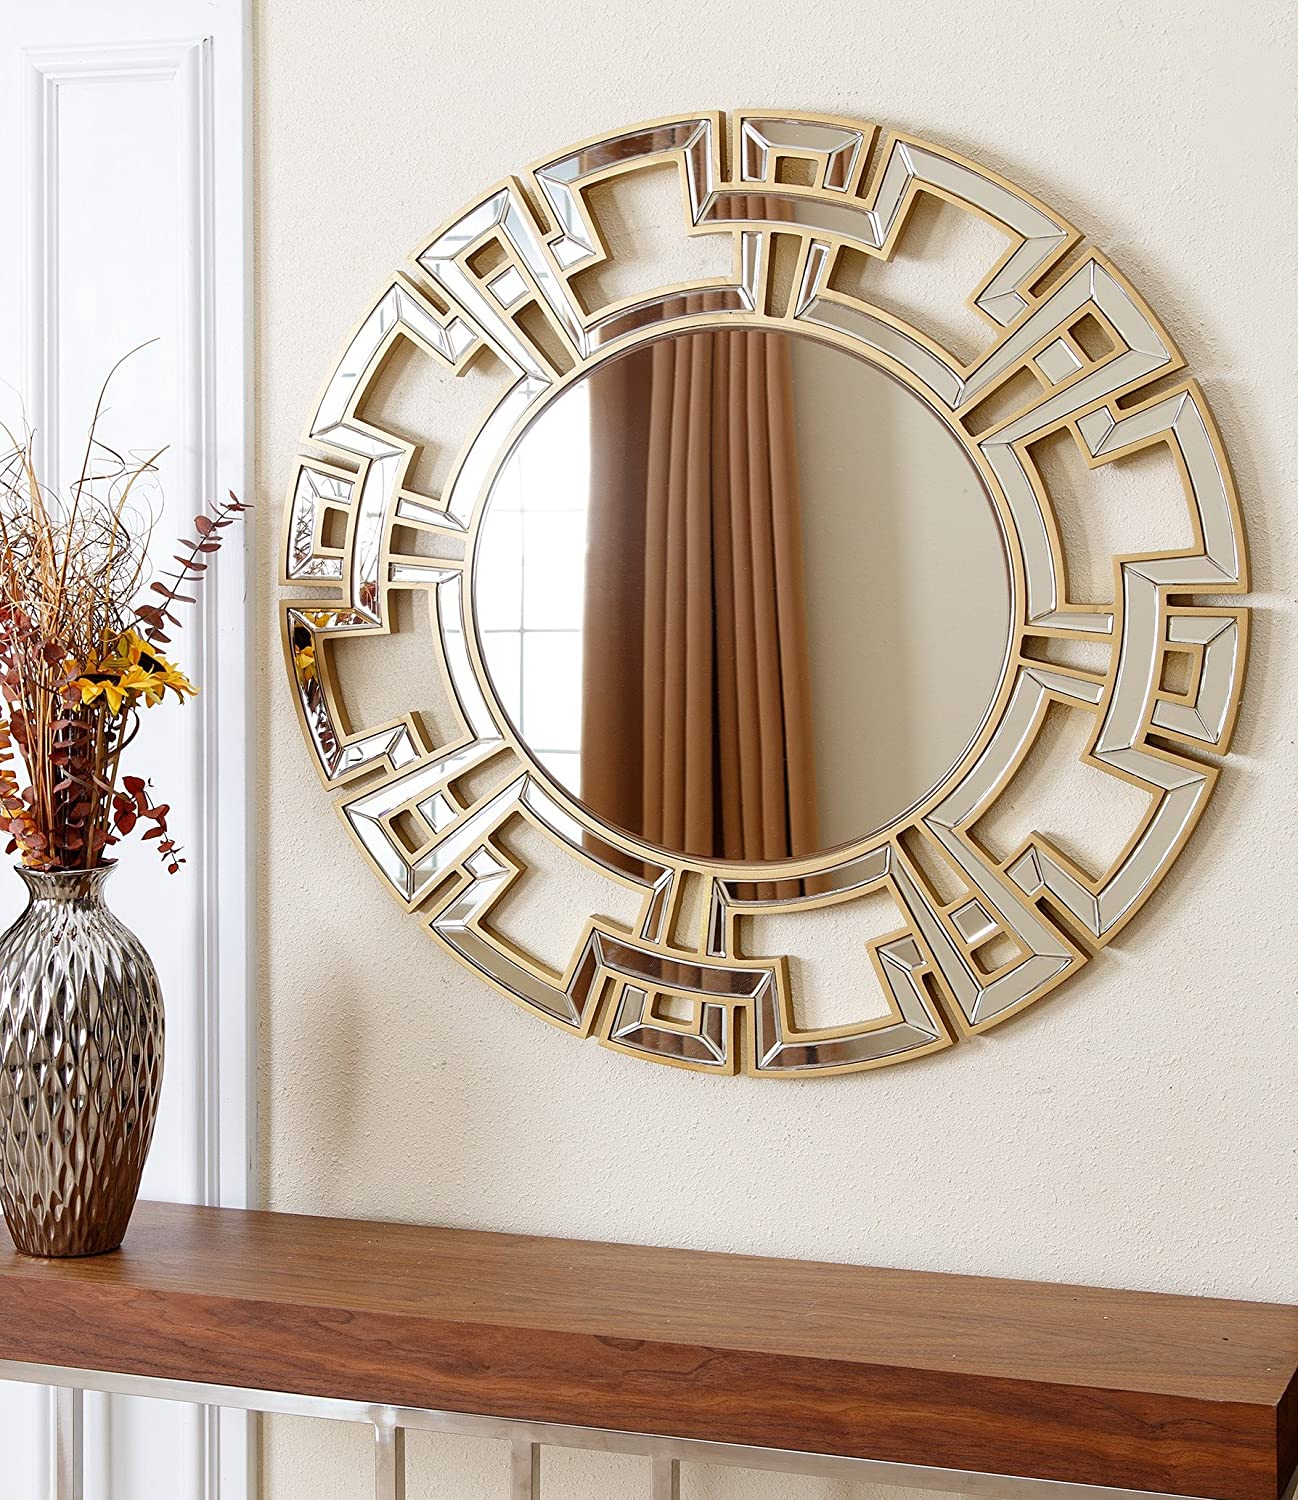 Amazon abbyson zentro round wall mirror gold home kitchen amipublicfo Choice Image